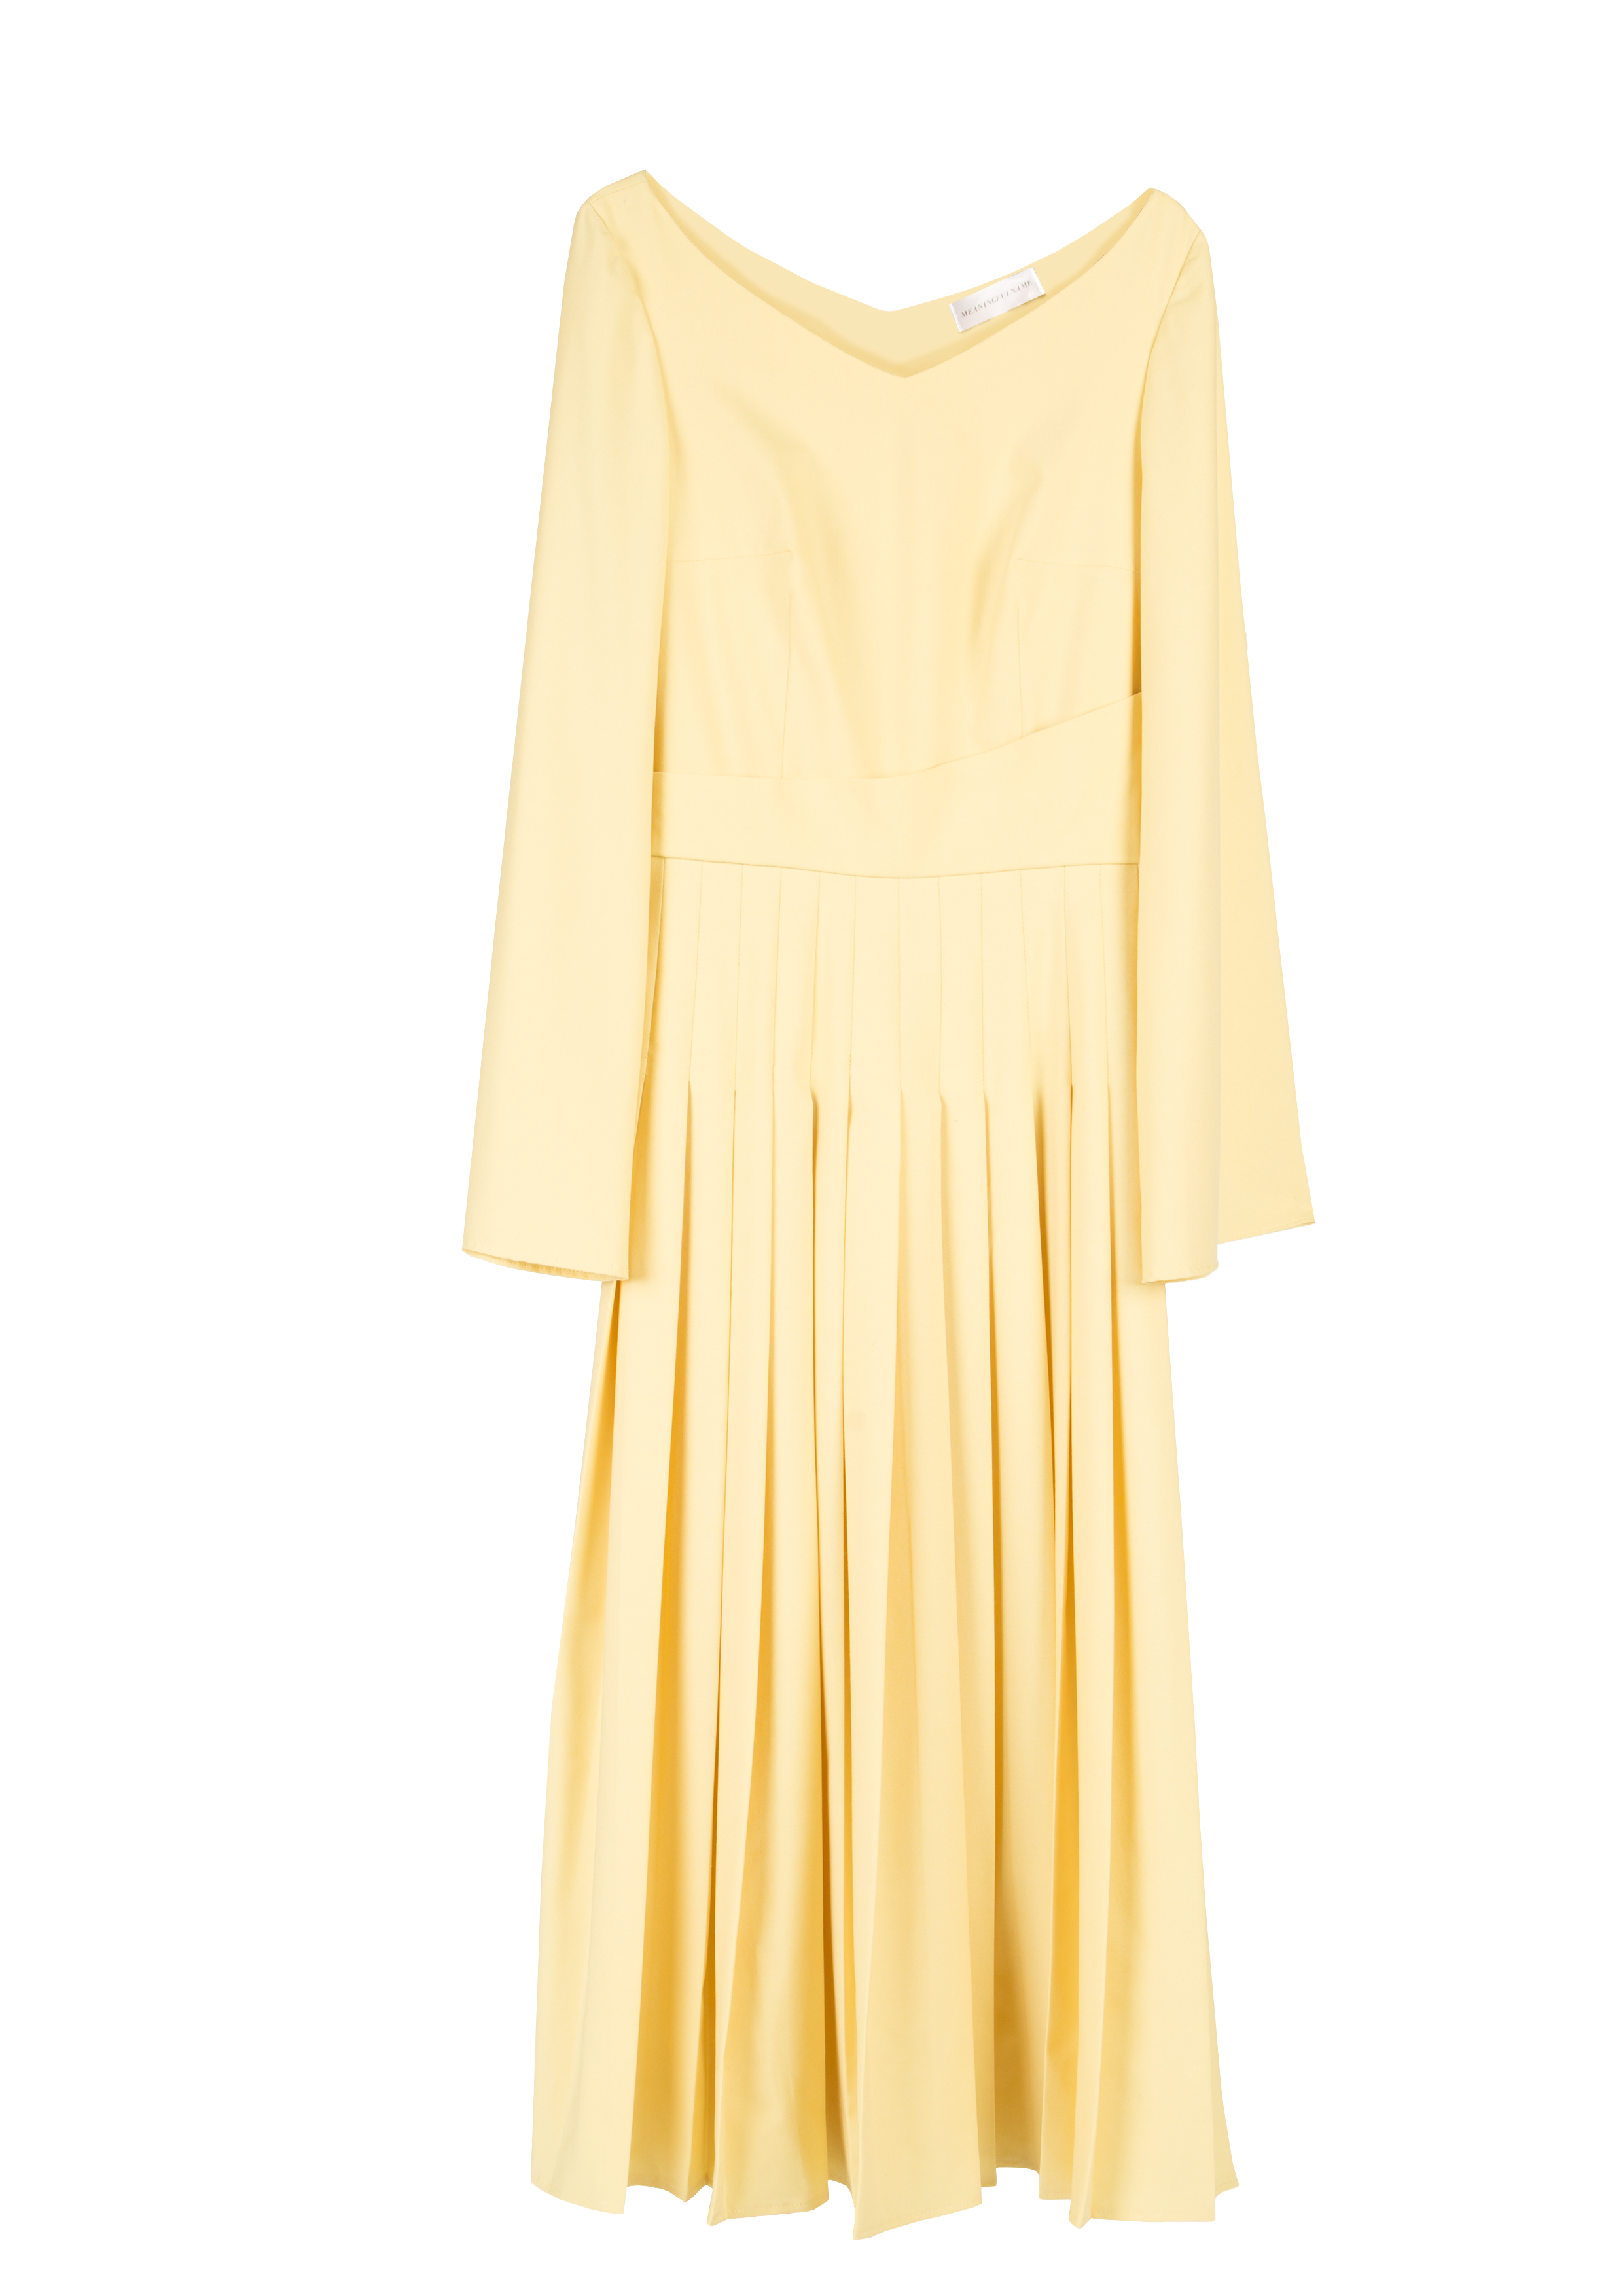 Bell Sleeves Midi Dress by Diana Kimbayeva on curated-crowd.com